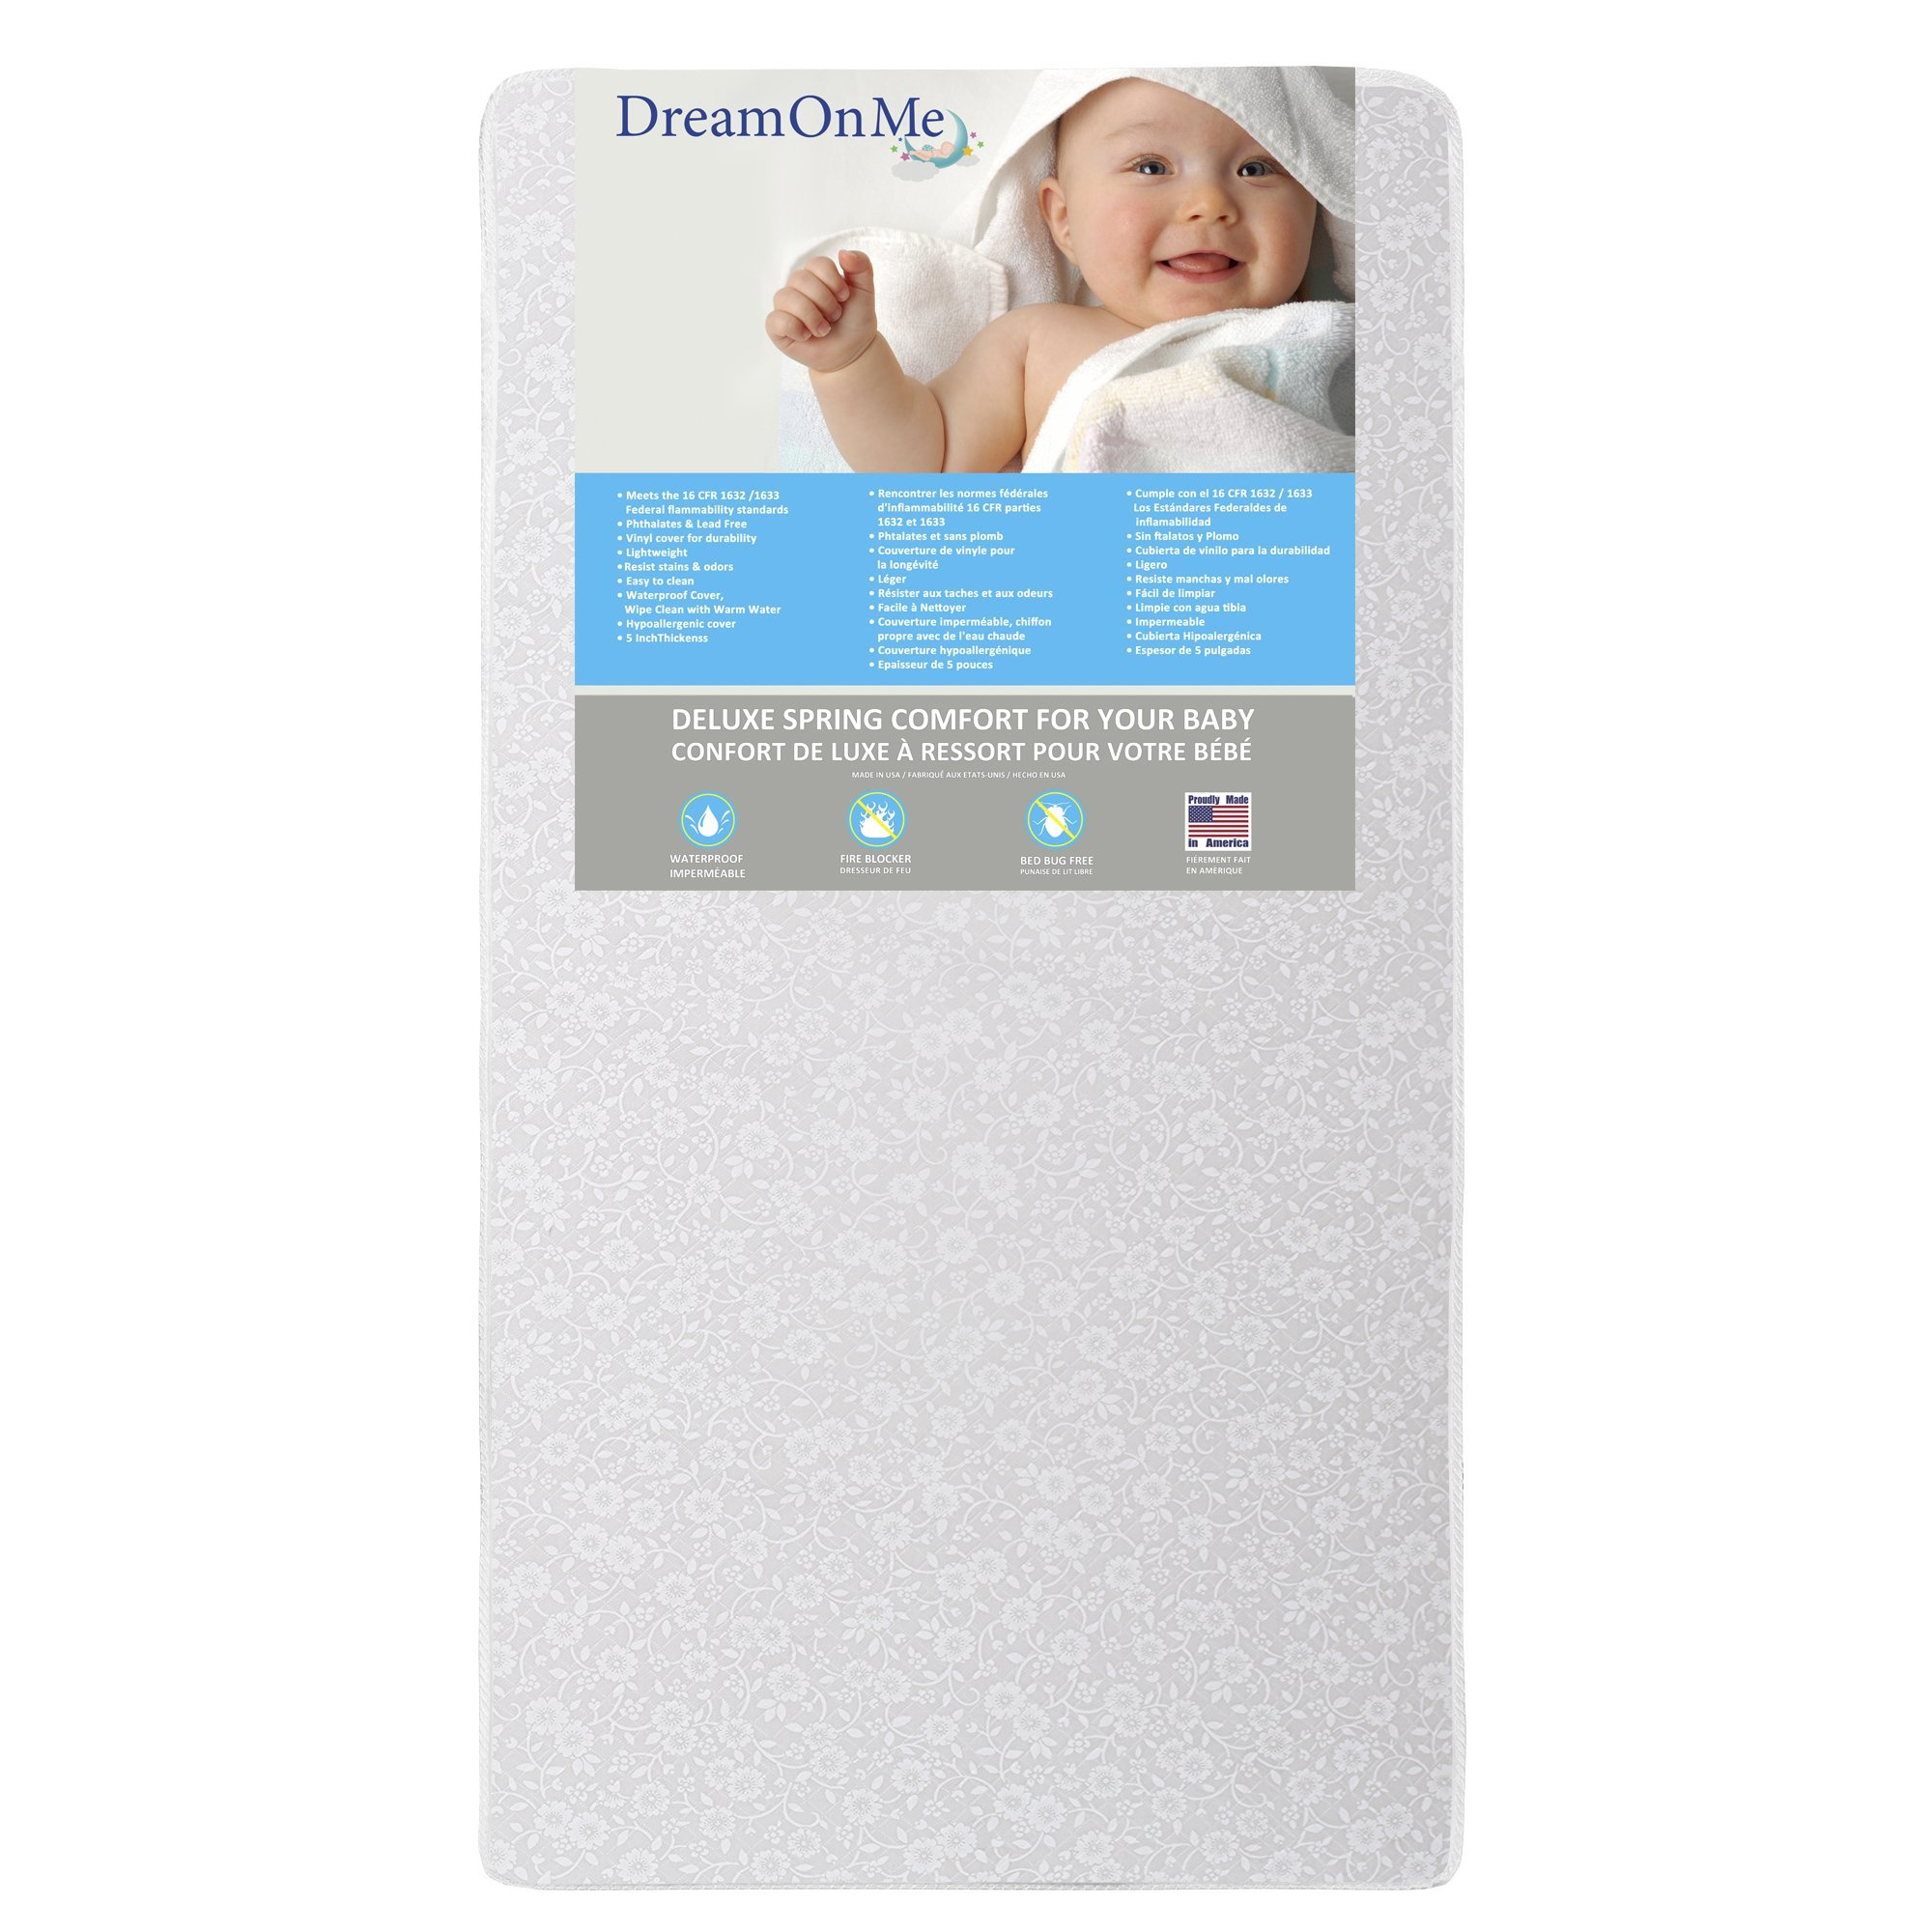 Dream On Me Full Size Firm Foam Crib and Toddler Bed Mattress, Little Baby, 6''